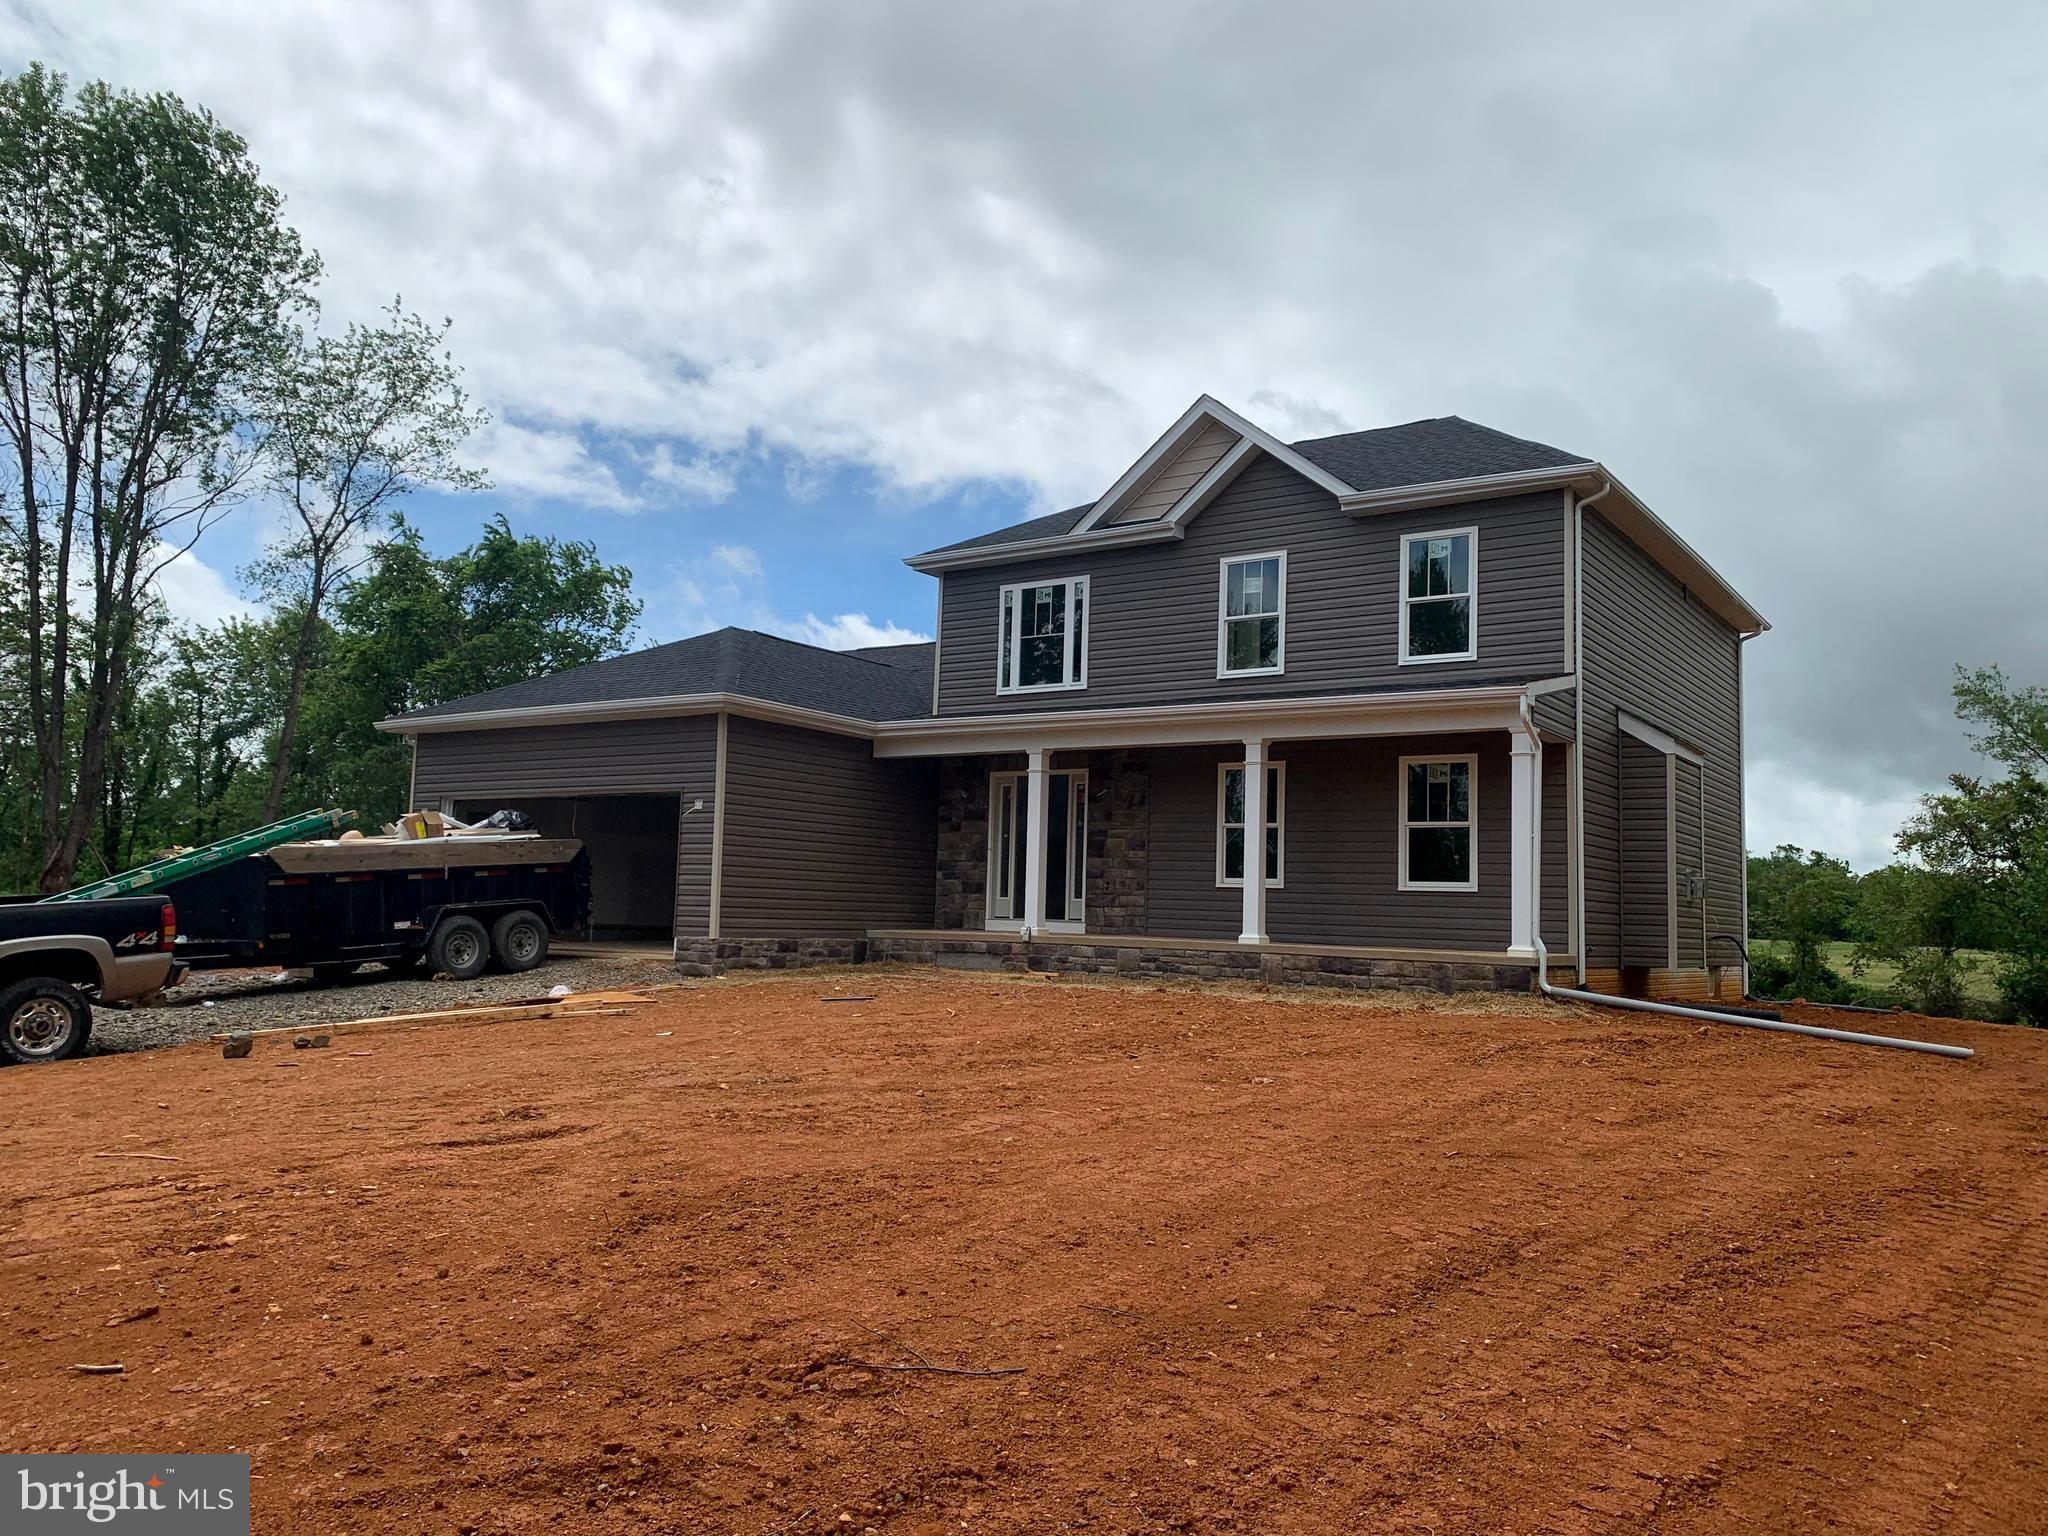 UNDER CONSTRUCTION IN UPSCALE DEVELOPMENT ON A 2 ACRE CUL-DE-SAC LOT.  COMPLETION ANTICIPATED MID JU